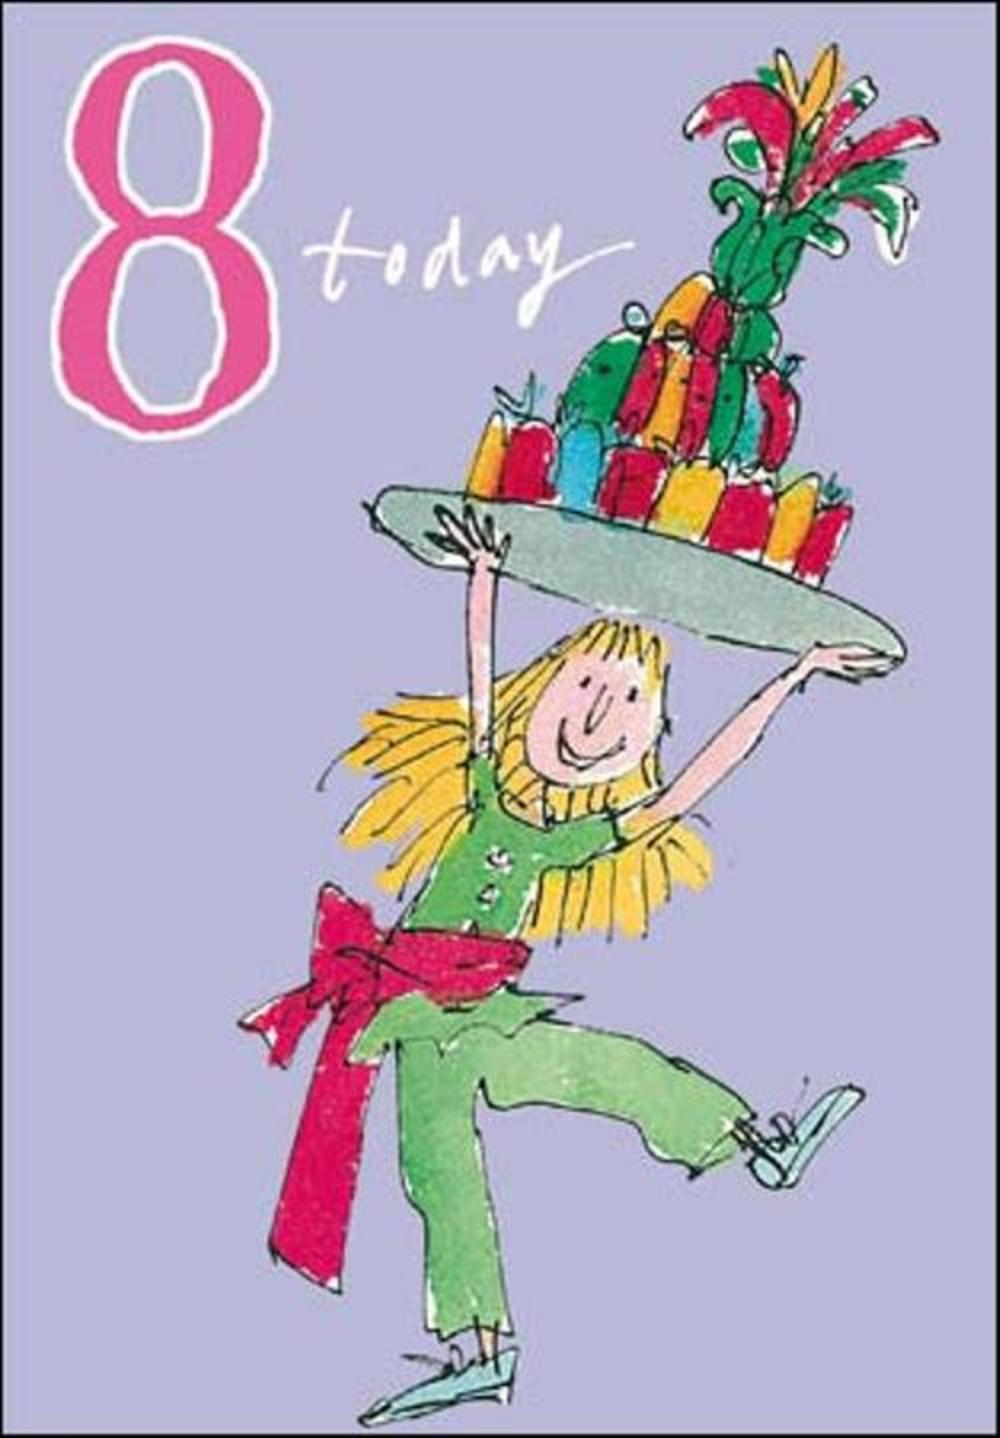 Quentin Blake Girls 8th Birthday Greeting Card